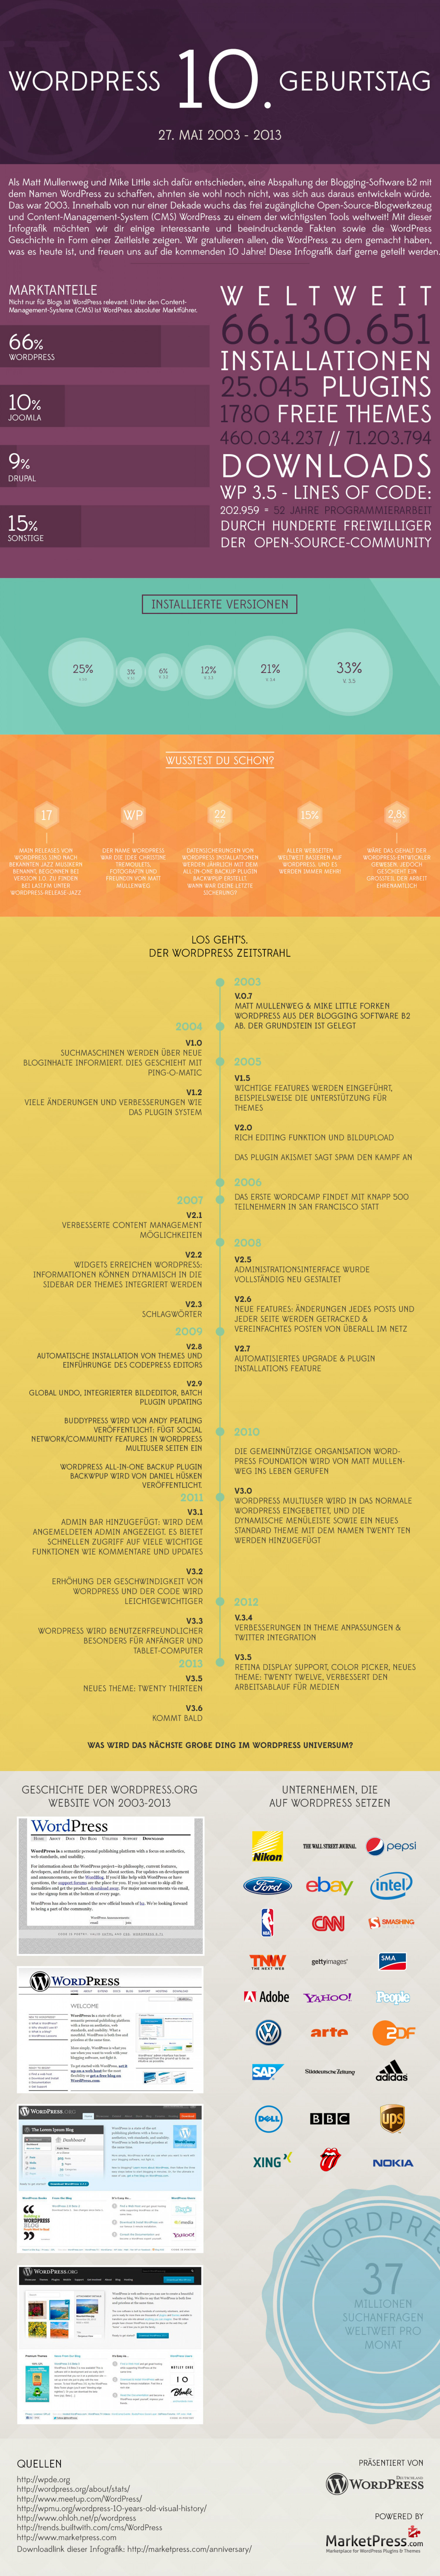 10 Jahre WordPress Infografik (german) - powered by MarketPress.com - WordPress 10th Anniversary Infographic